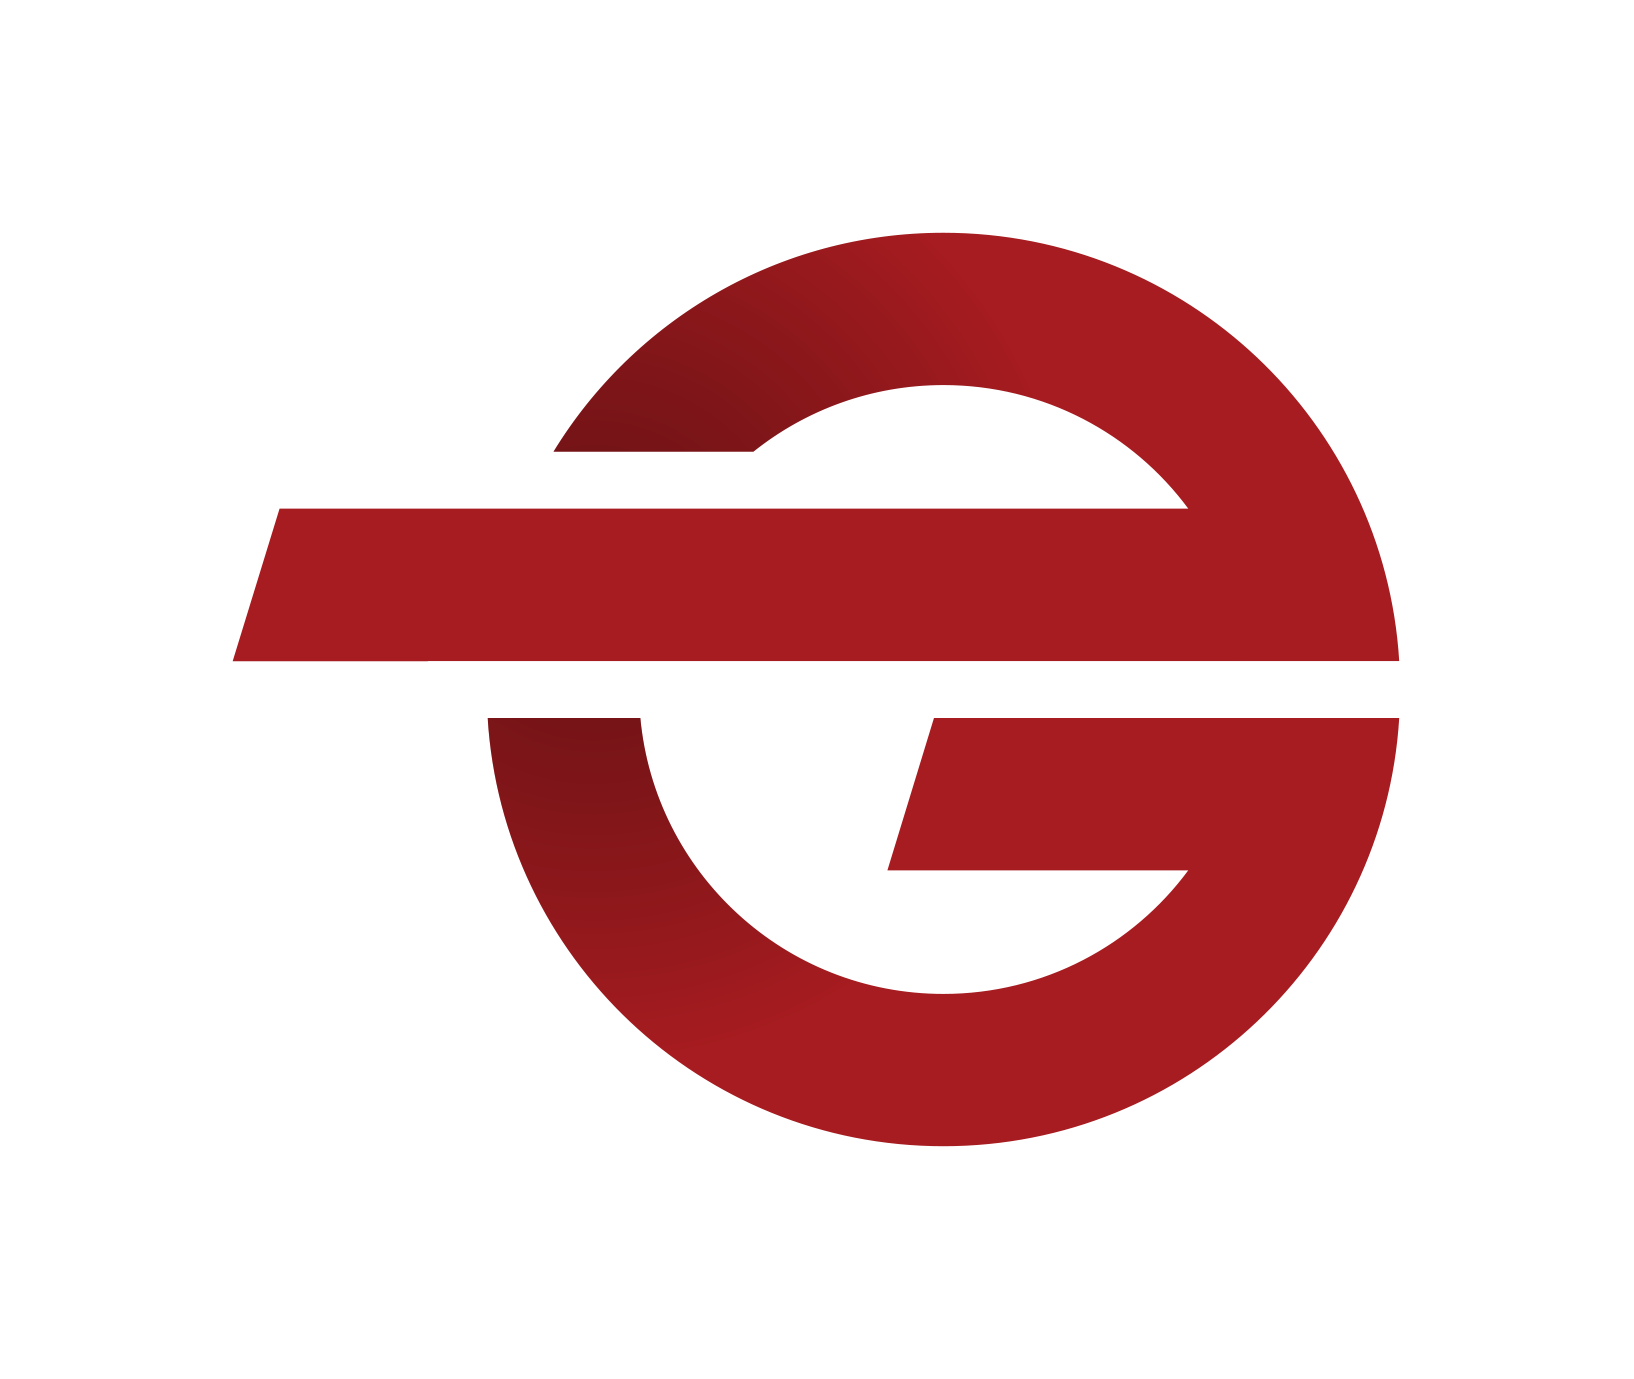 Greater Edmonton logo